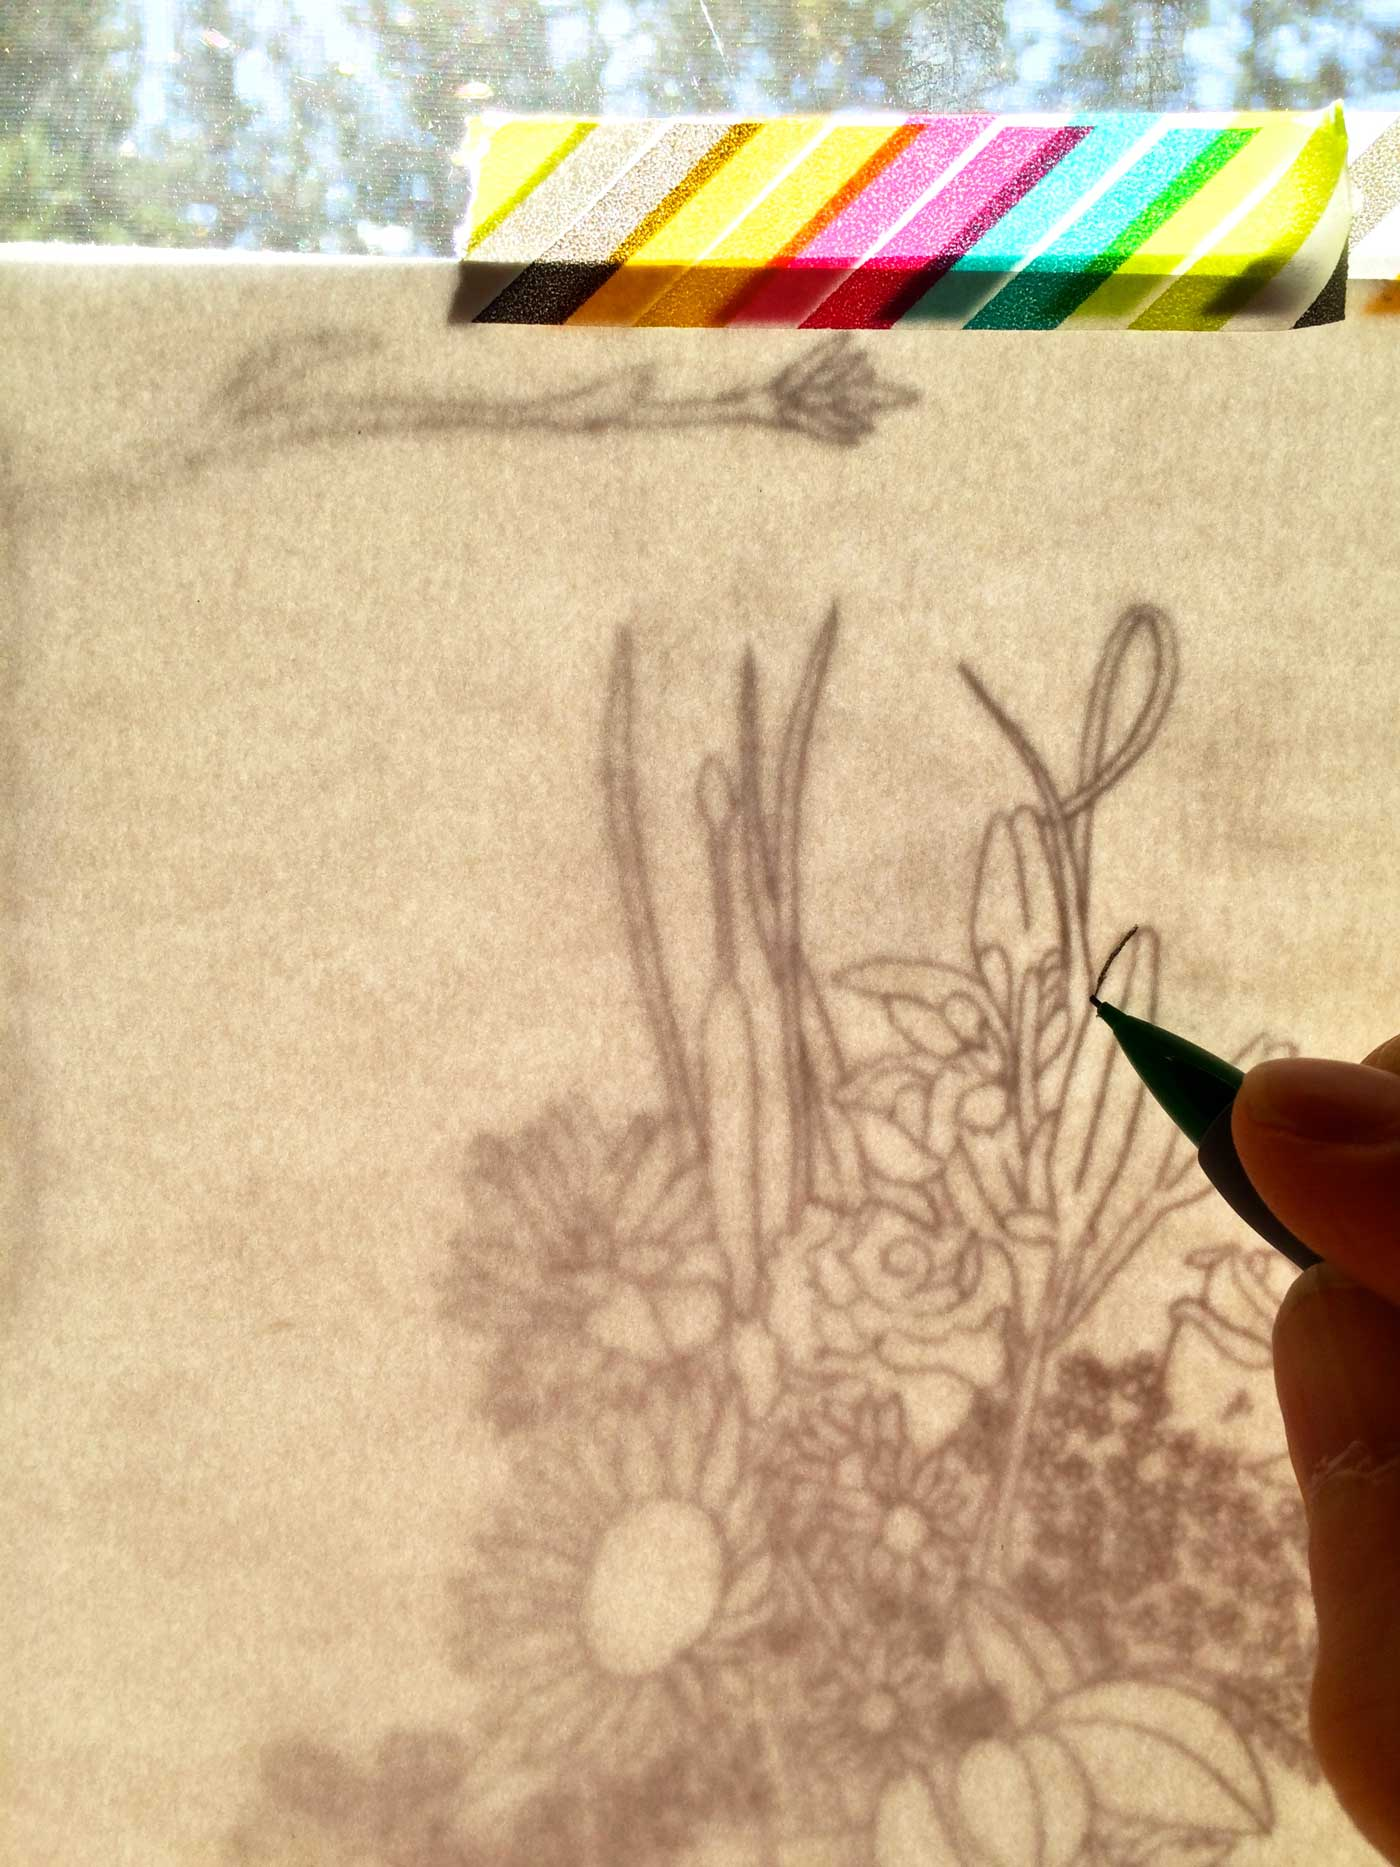 Trace over your lines with a marker or pencil. I like to use a mechanical pencil and then ink.